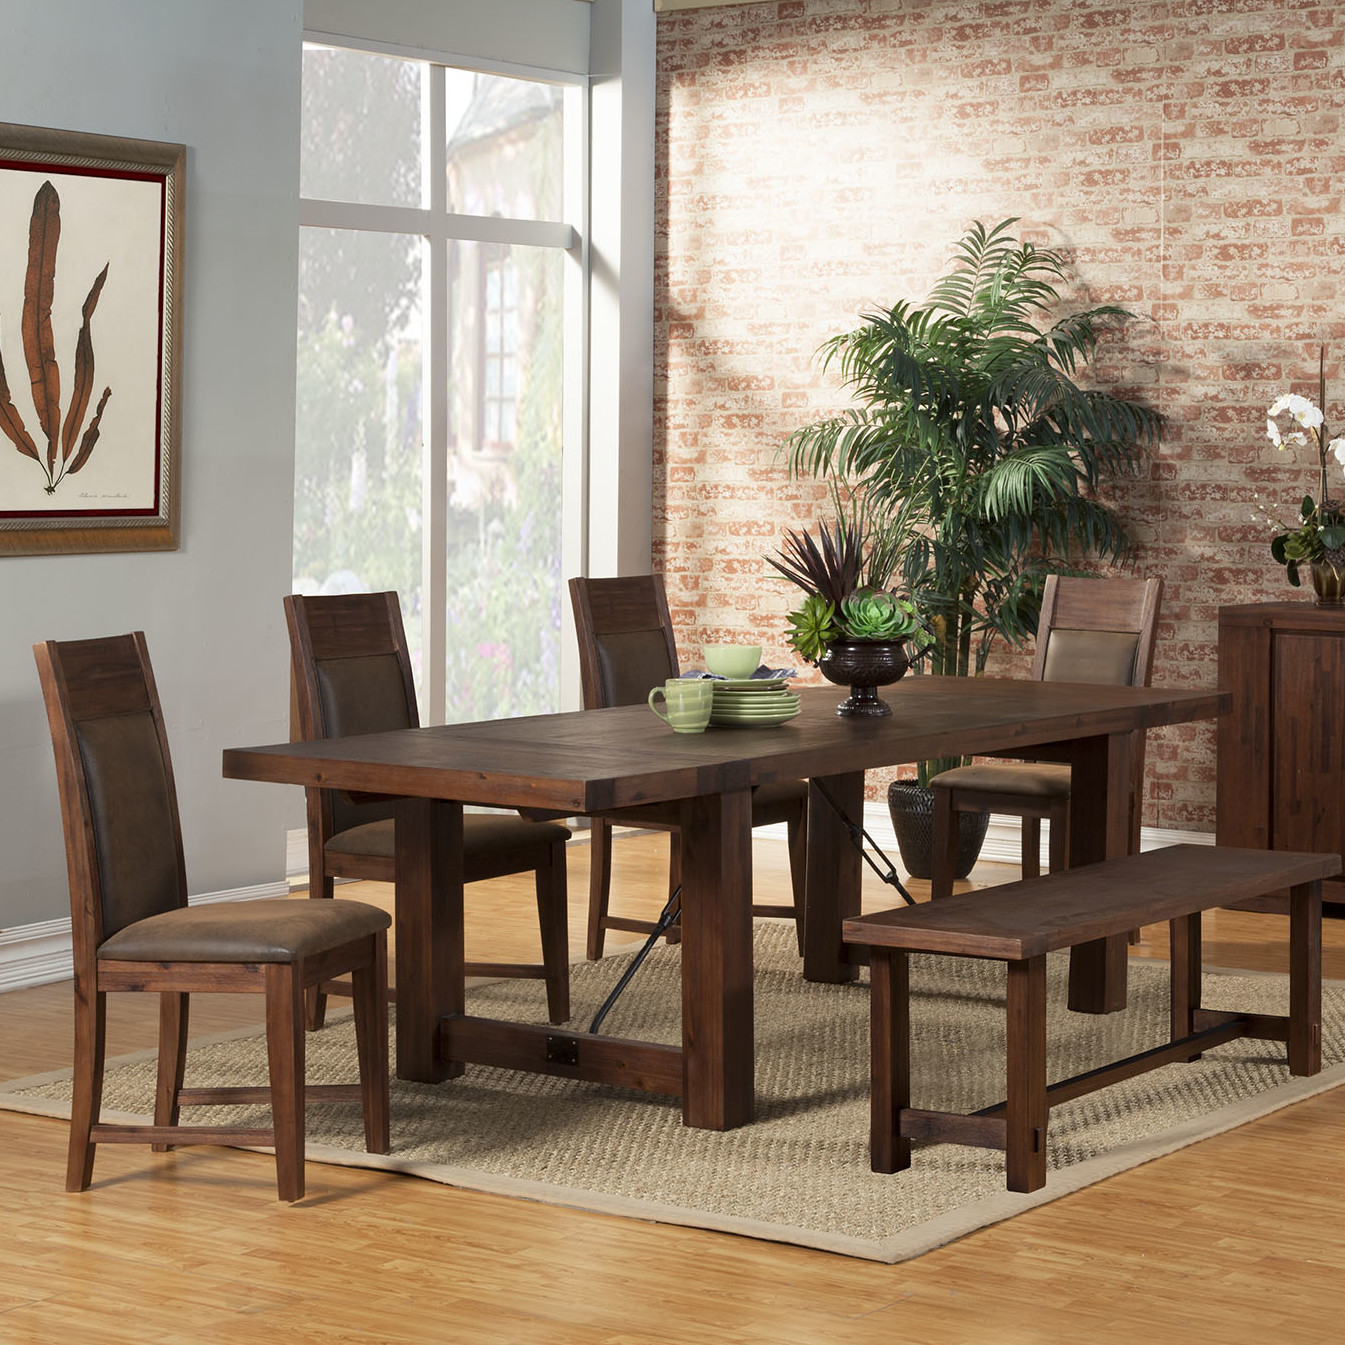 oc furnitures guide to buying a dining table set - Buying A Dining Room Table